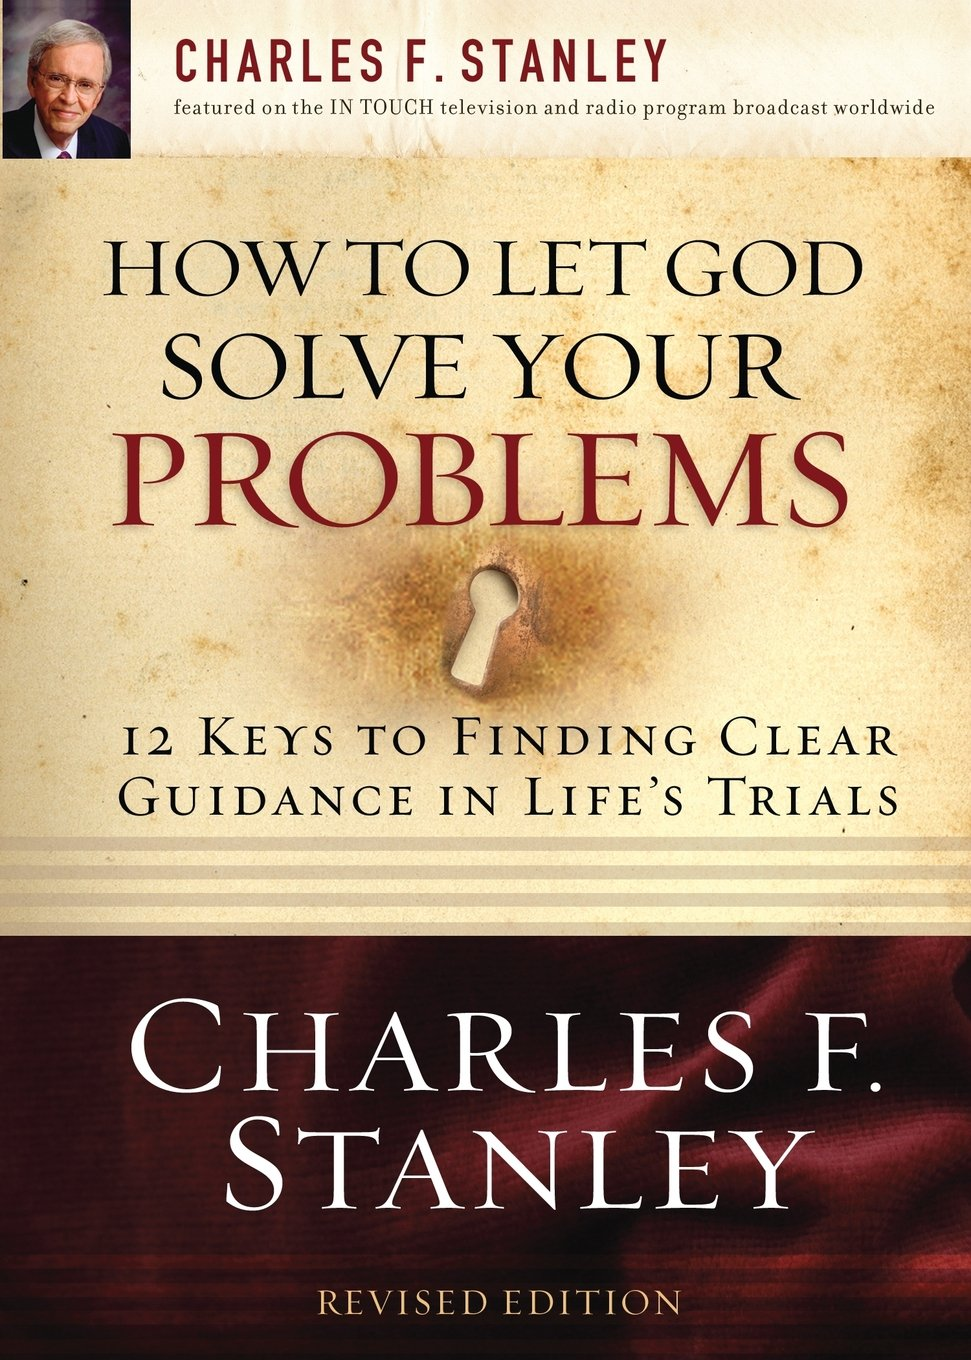 How to Let God Solve Your Problems: 12 Keys for Finding Clear Guidance in Life's Trials PDF